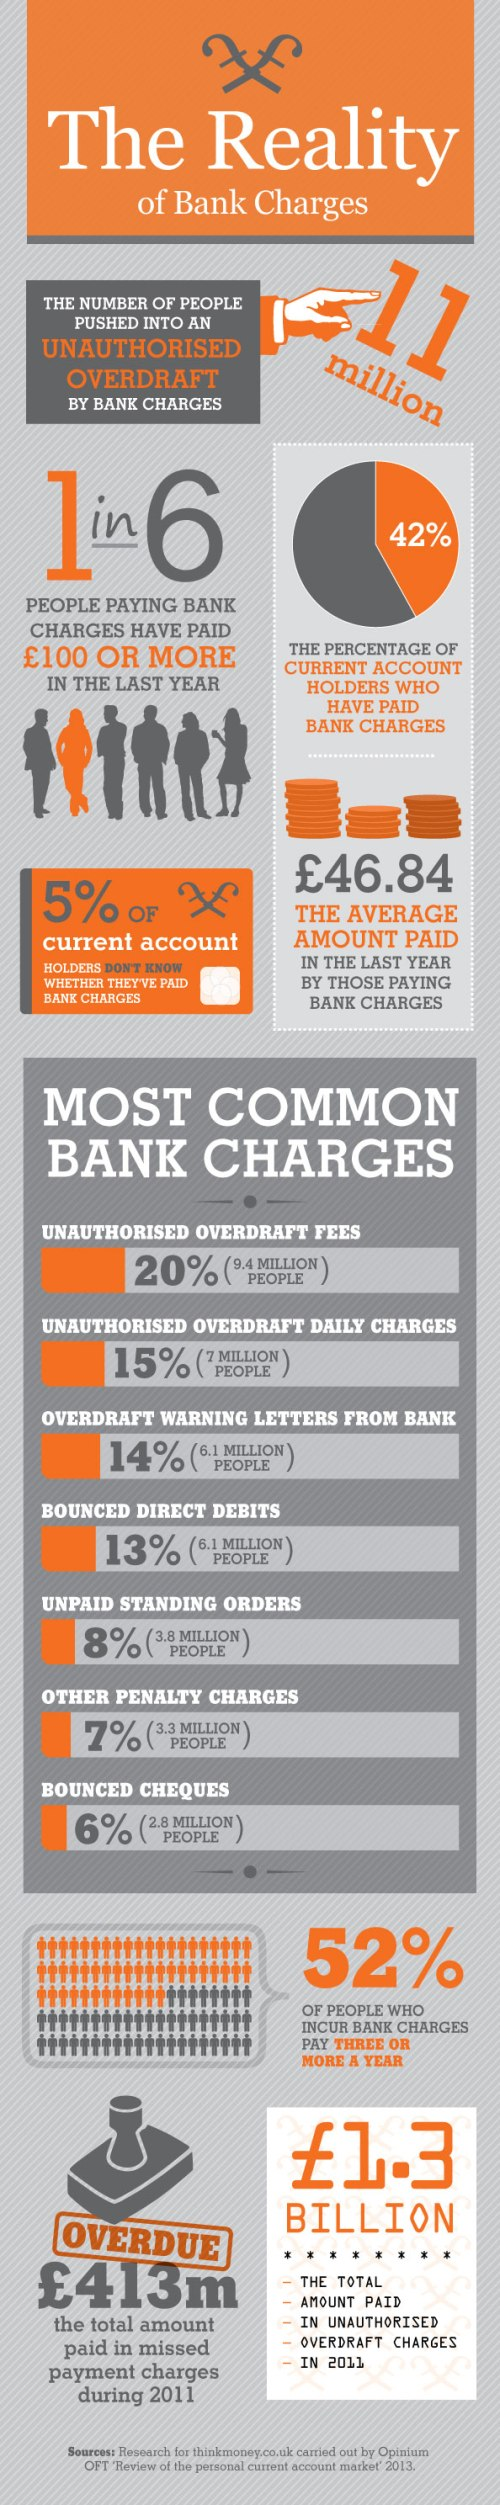 the-reality-of-bank-charges_5162ebfdc2add